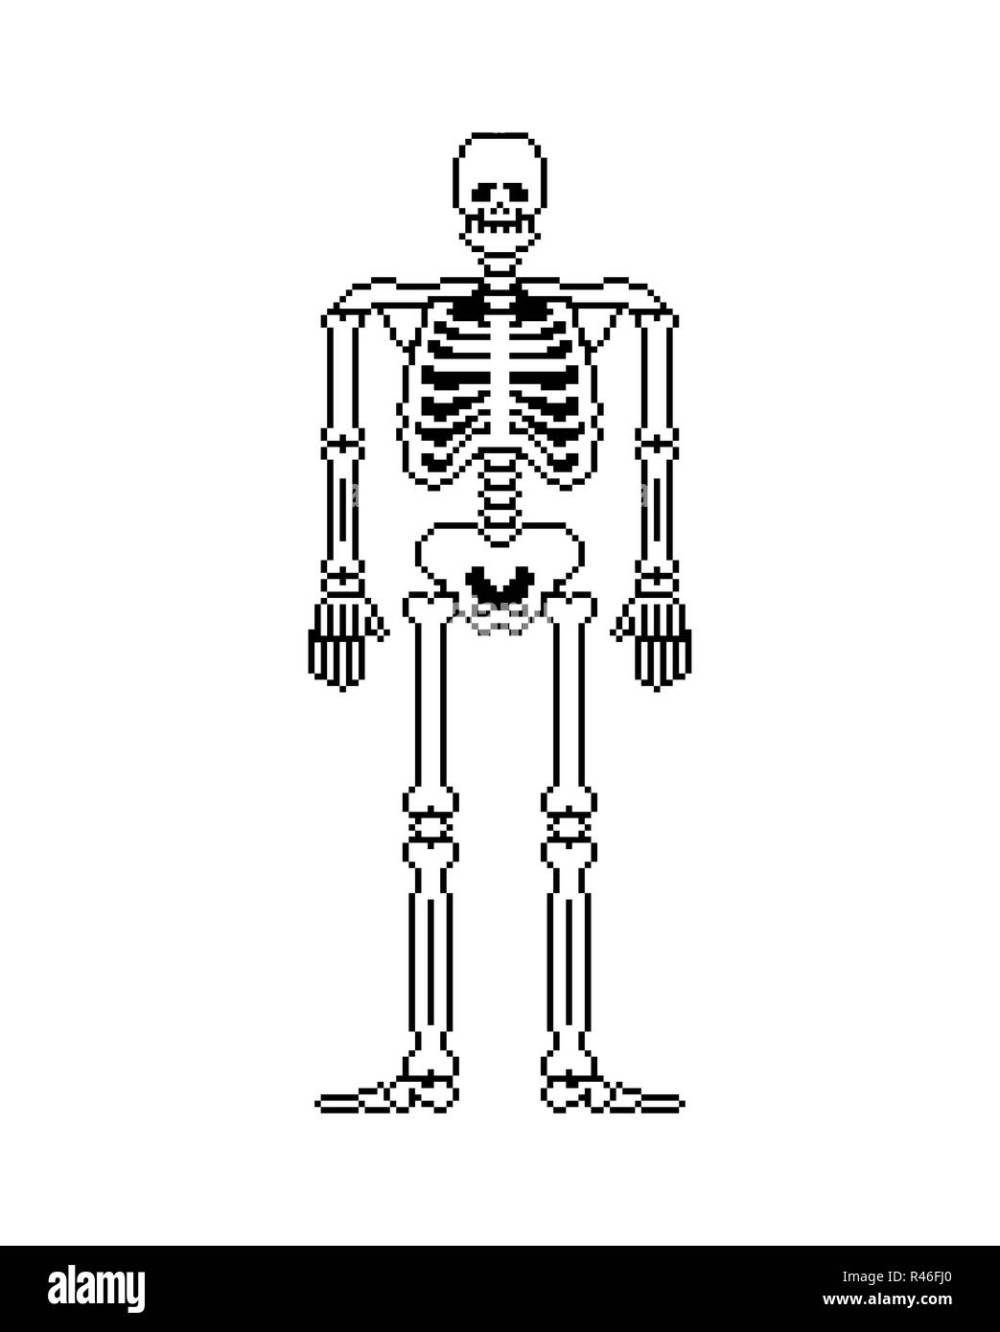 medium resolution of skull and bones anatomy 8 bit pixelate pelvic bone and ribs